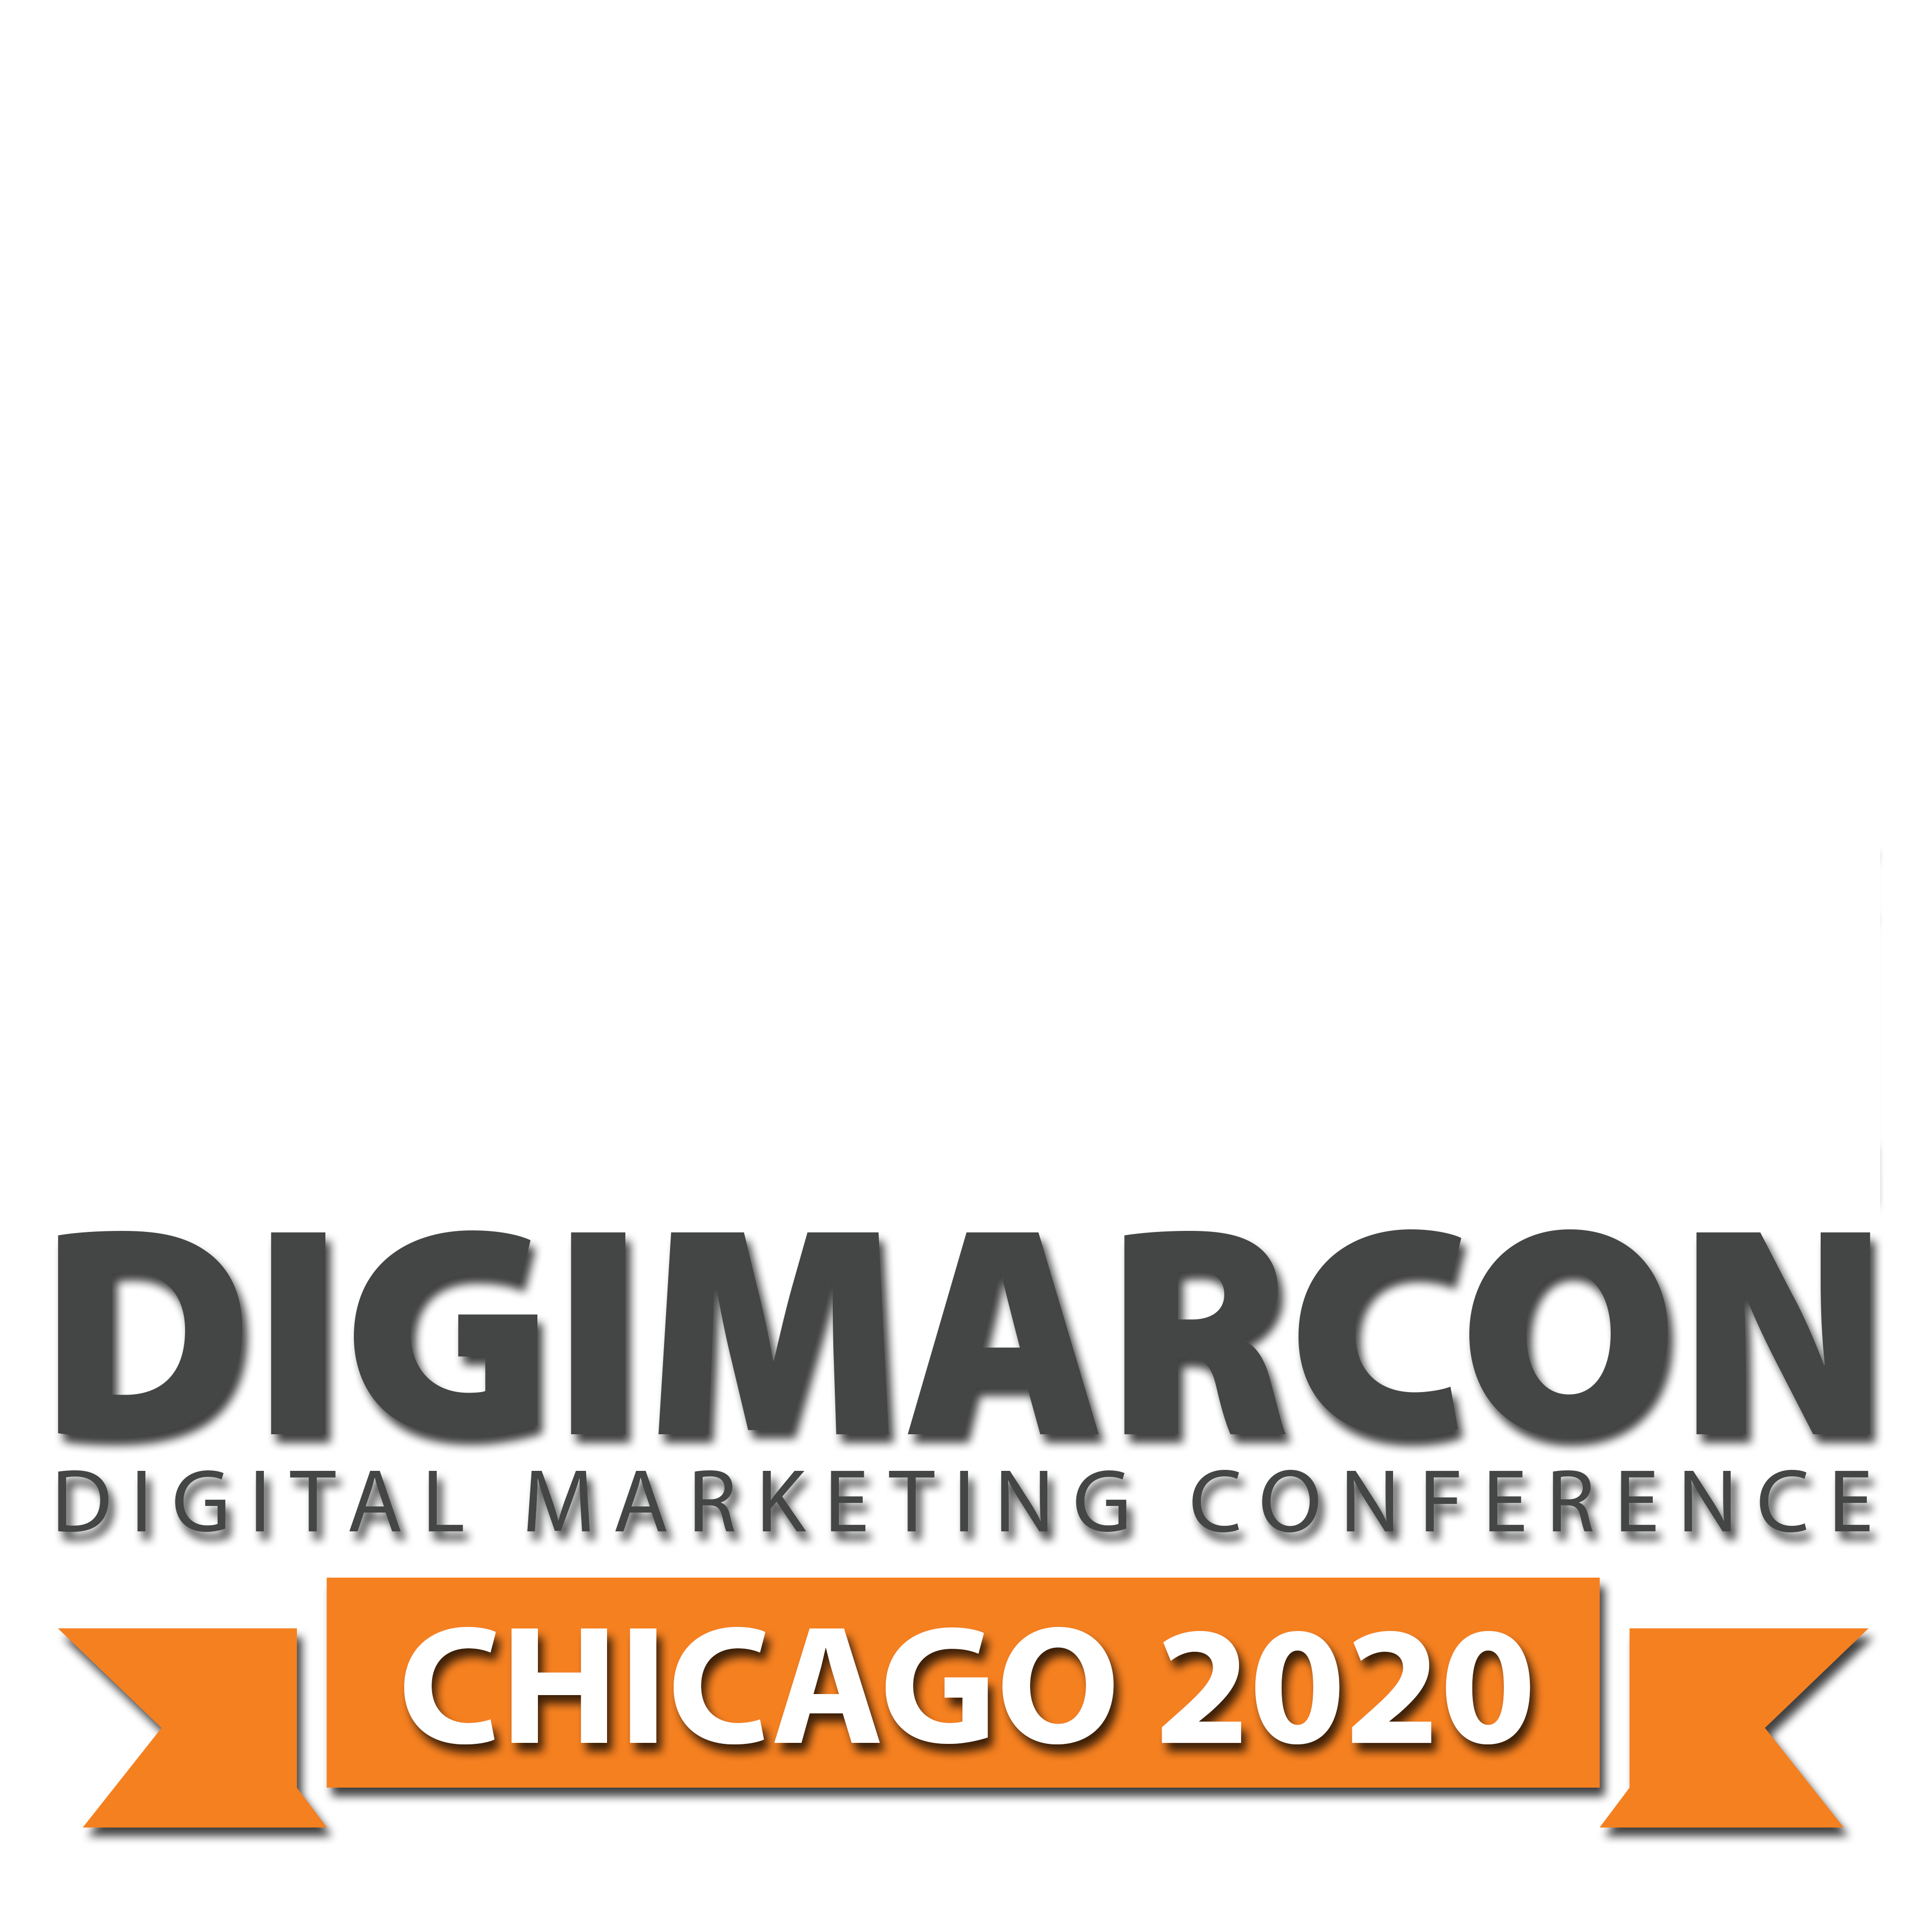 DigiMarCon Chicago 2020 – Digital Marketing Conference & Exhibition